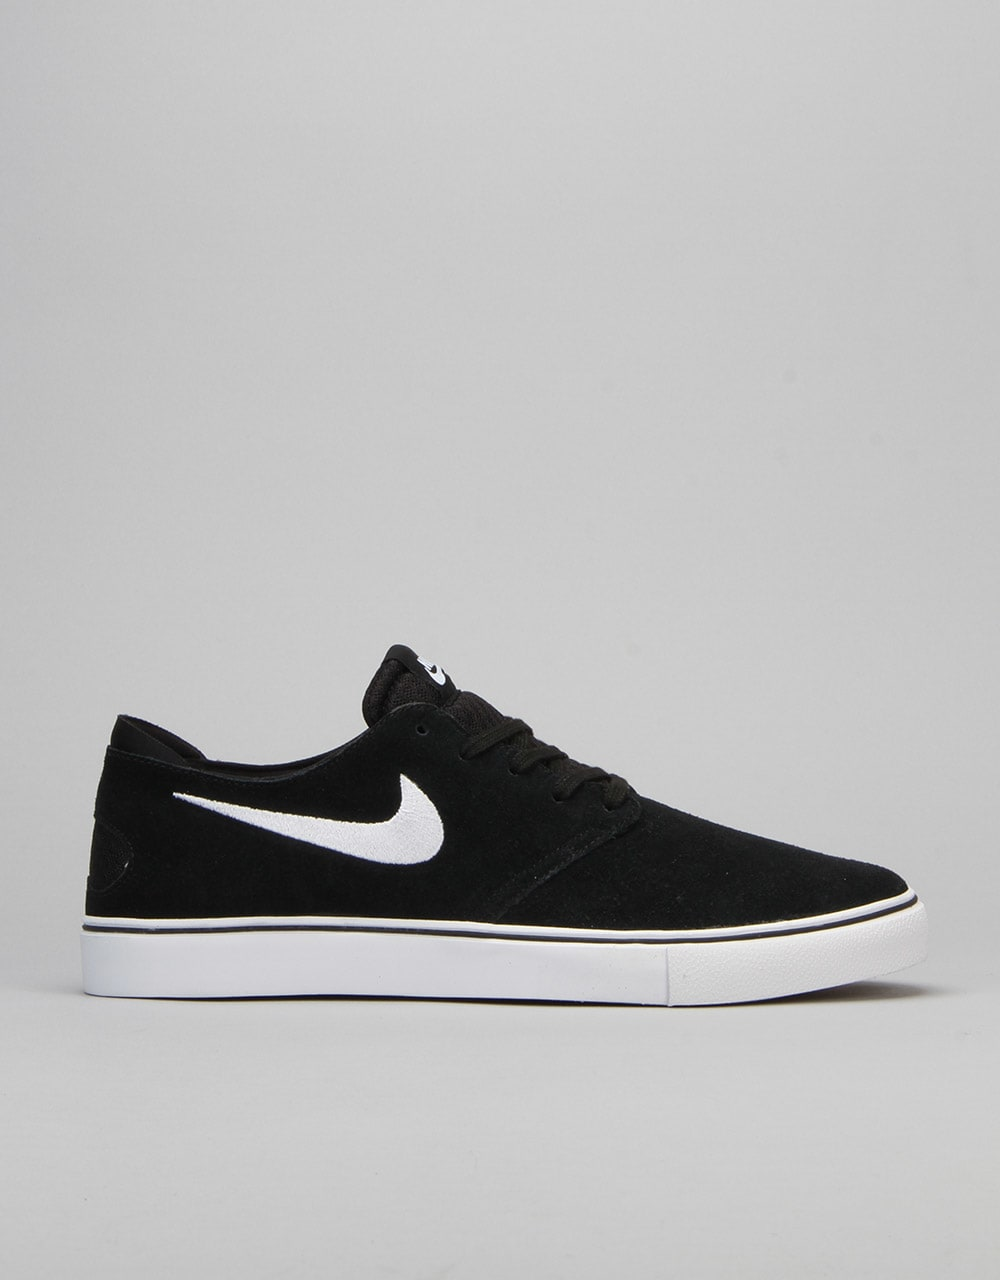 Nike SB Zoom Oneshot Skate Shoes - Black/White-Gum Light Brown | Skate  Shoes | Mens Skateboarding Trainers & Footwear | Route One